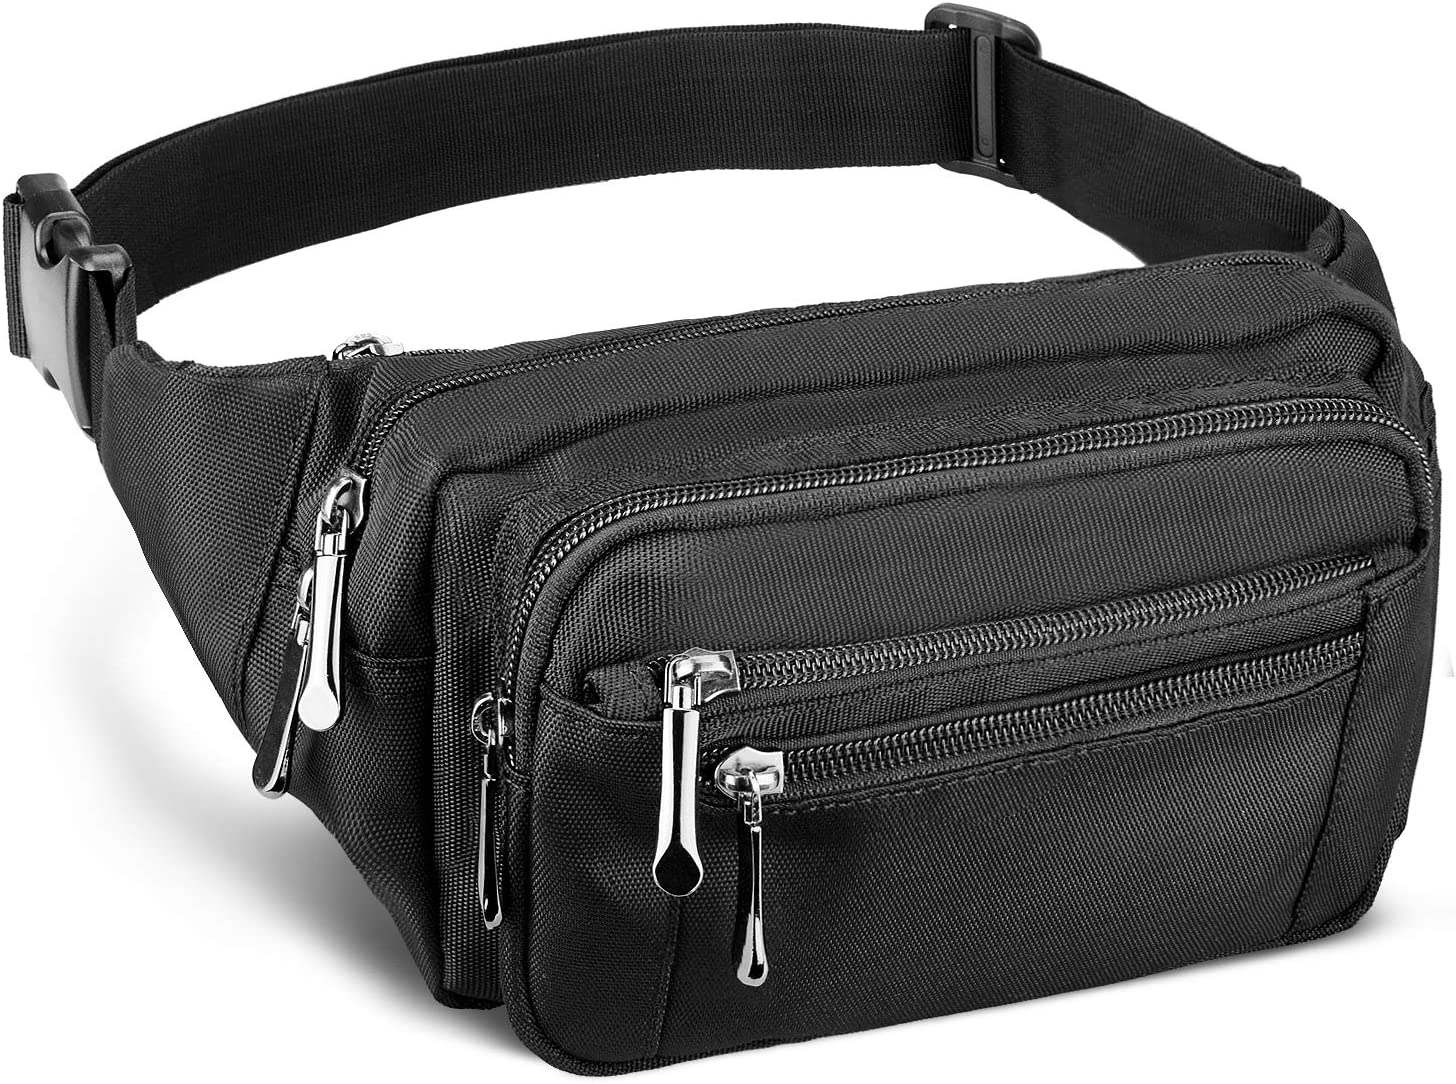 Fanny Pack for Men&Women with Water-Resistant Adjustable Strap Waist Pack Bags for Sports Workout Running Traveling Hiking Cycling Casual Carrying of All Phones: Sports & Outdoors